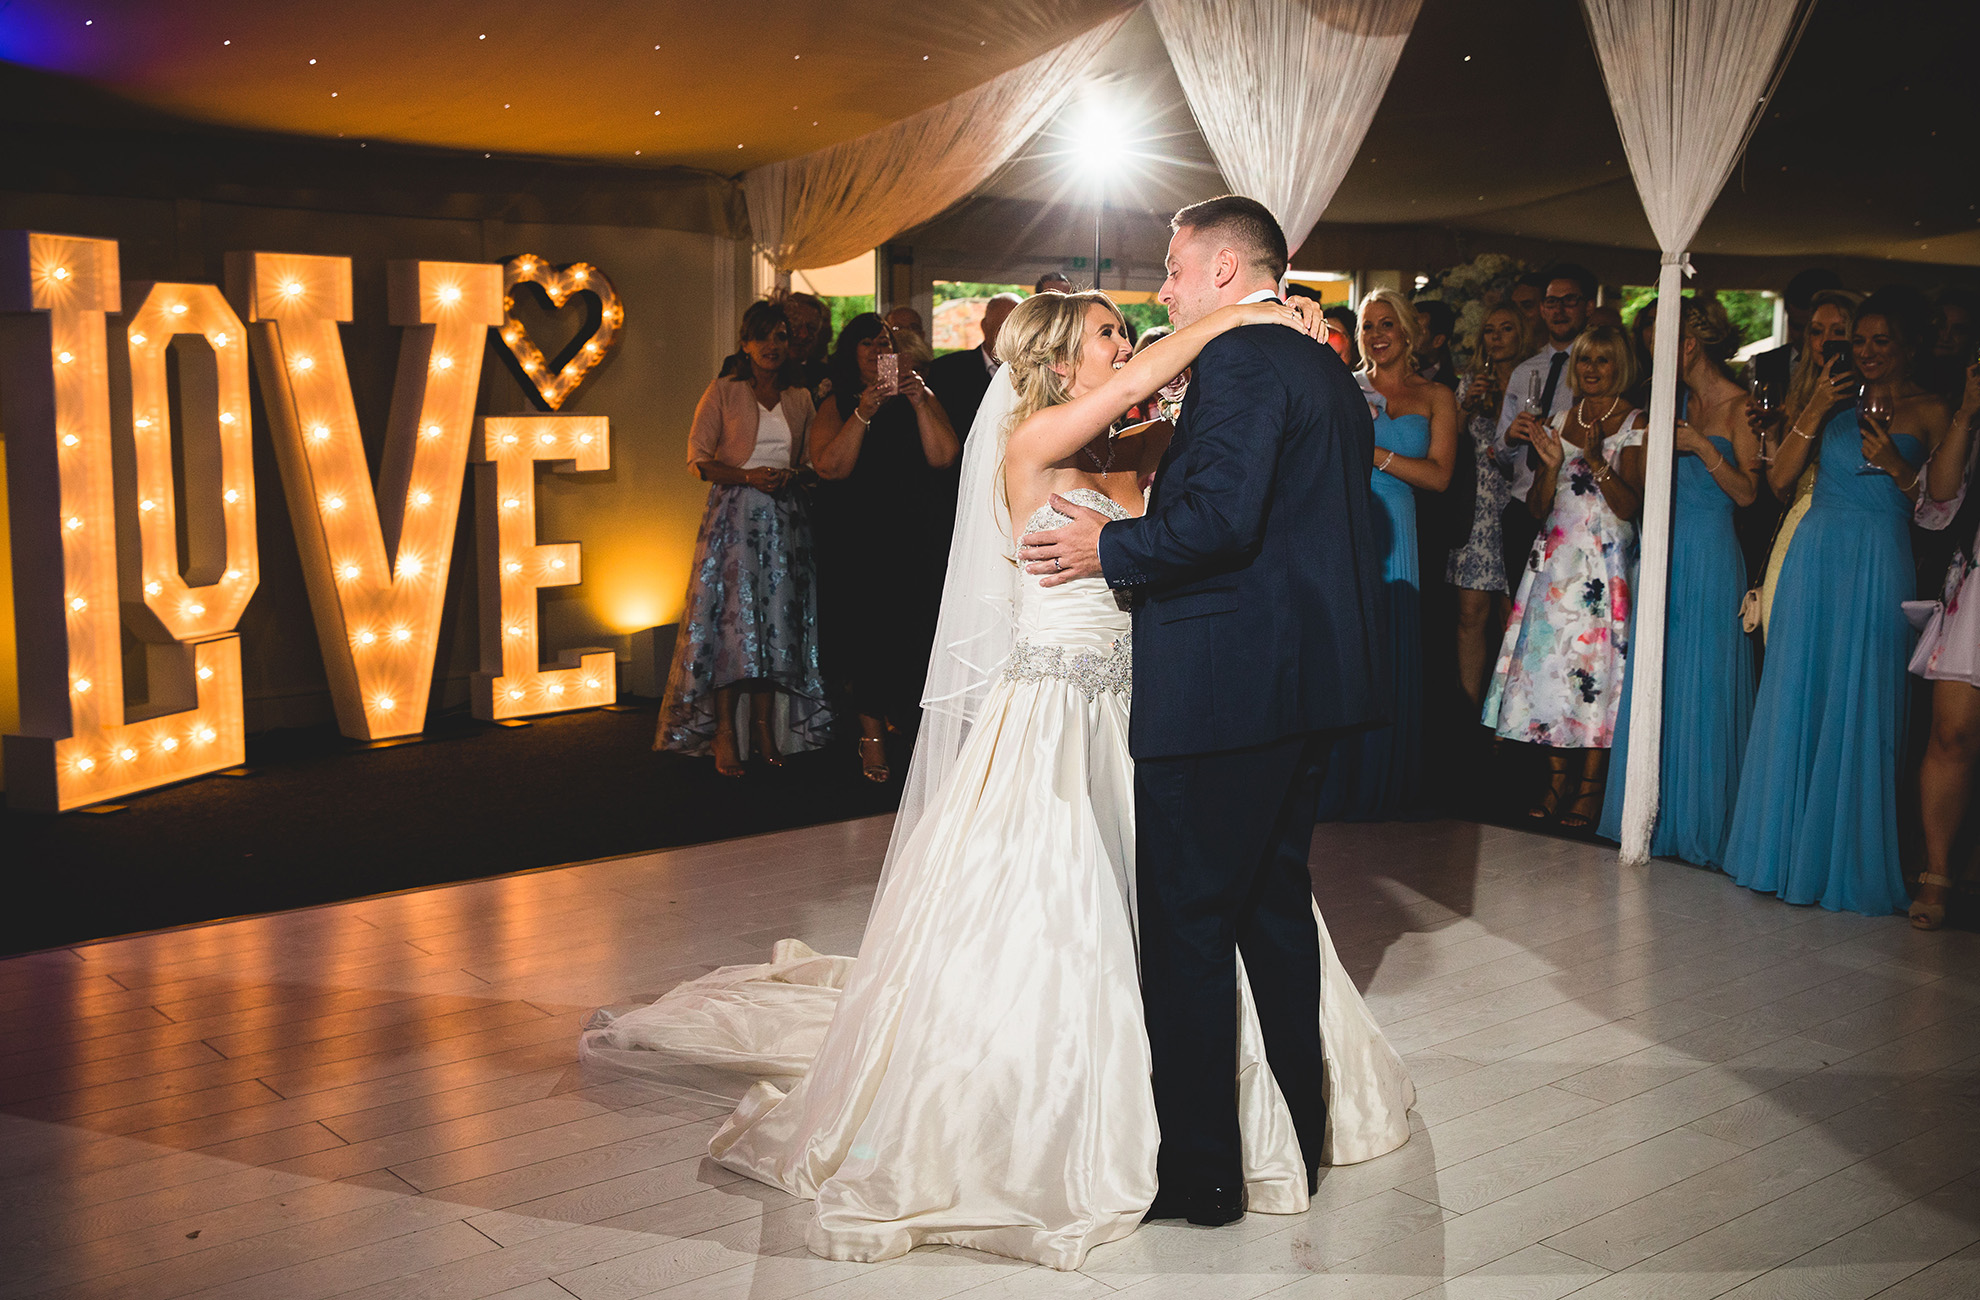 A couple dance in front of giant love letters during their wedding reception at Combermere Abbey